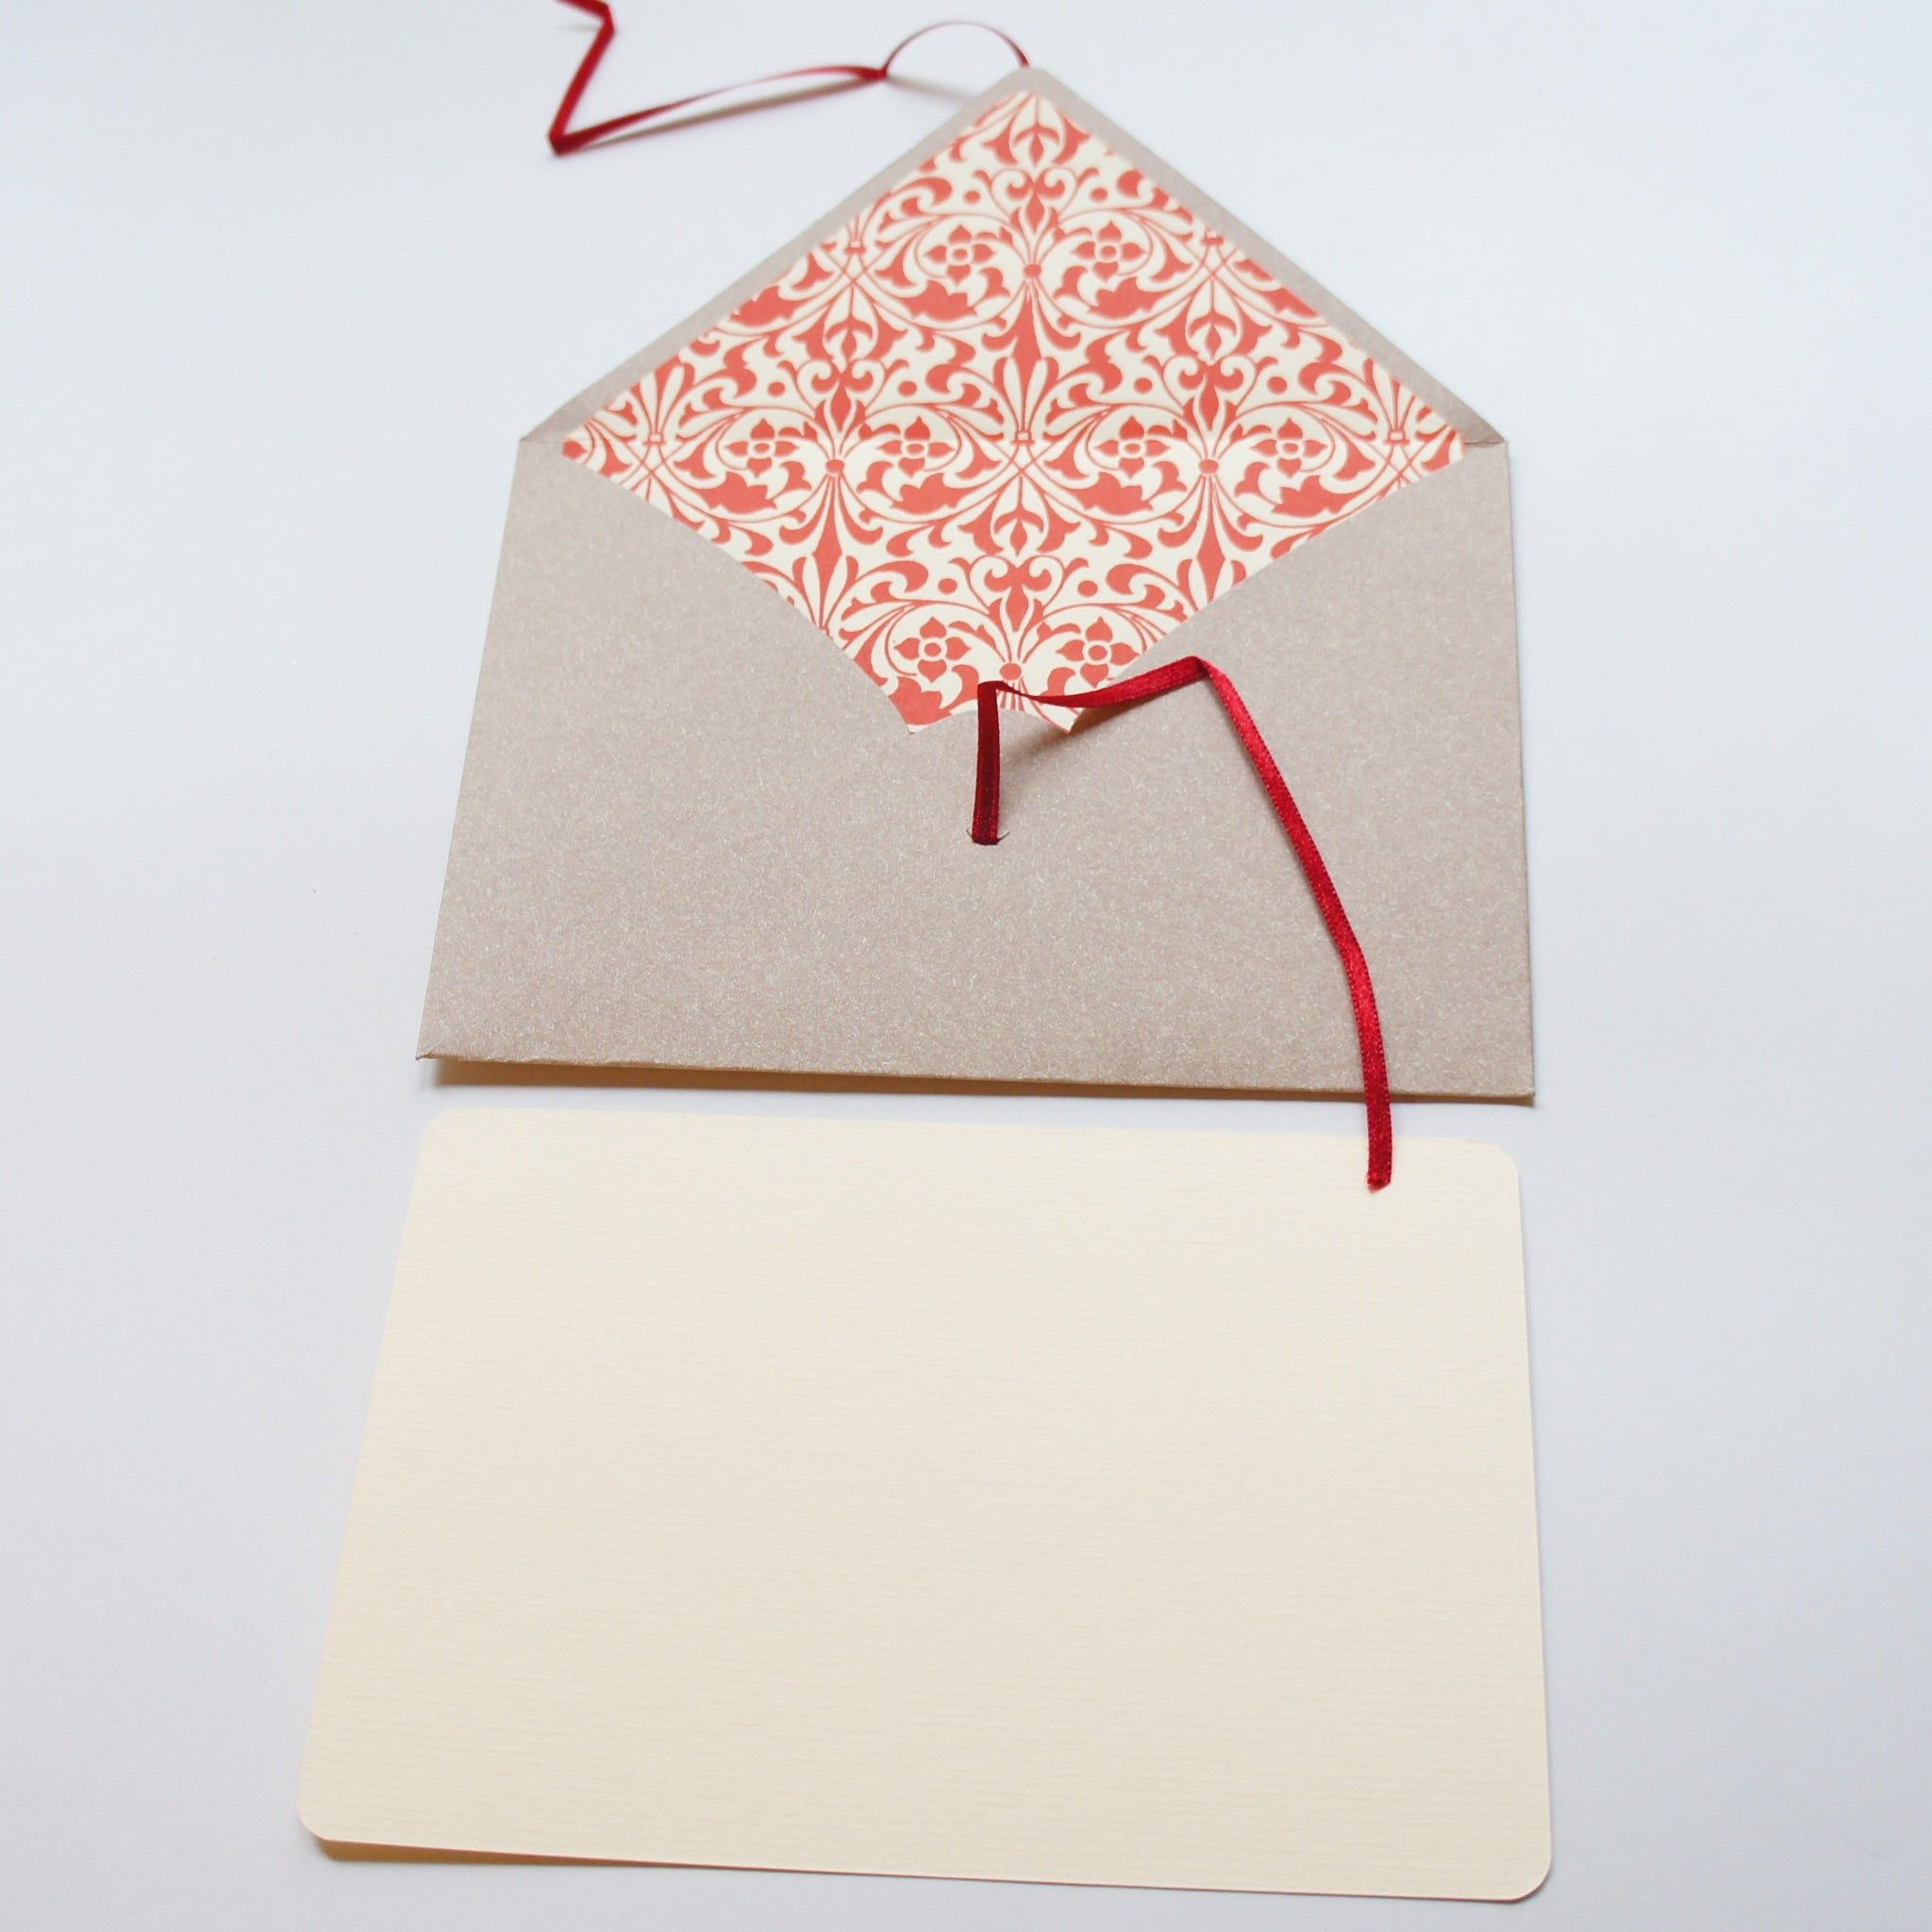 Medium Delightful Envelope and Note Card with a Secret